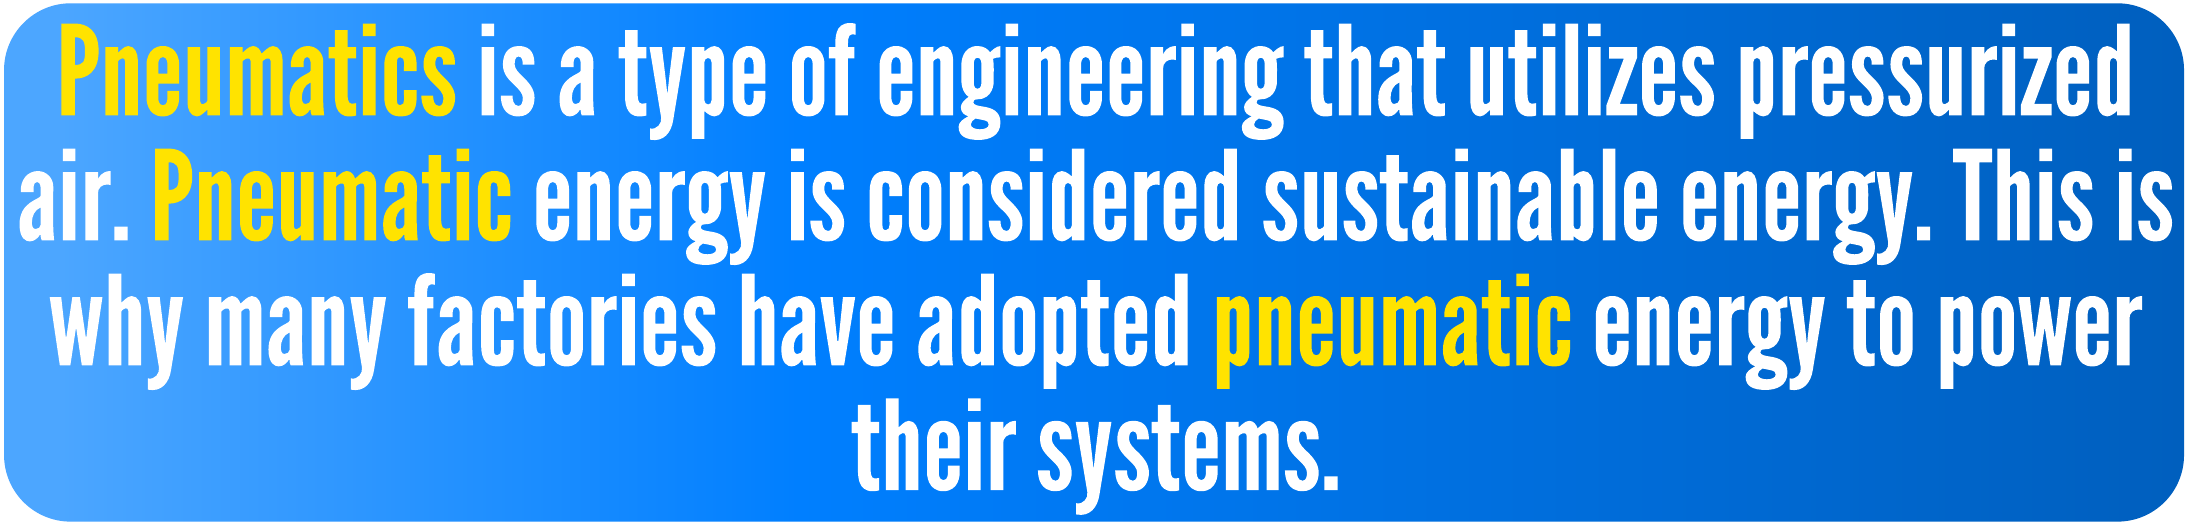 Pneumatics is a type of engineering that utilizes pressurized air. Pneumatic energy is considered sustainable energy. This is why many factories have adopted pneumatic energy to power their systems.